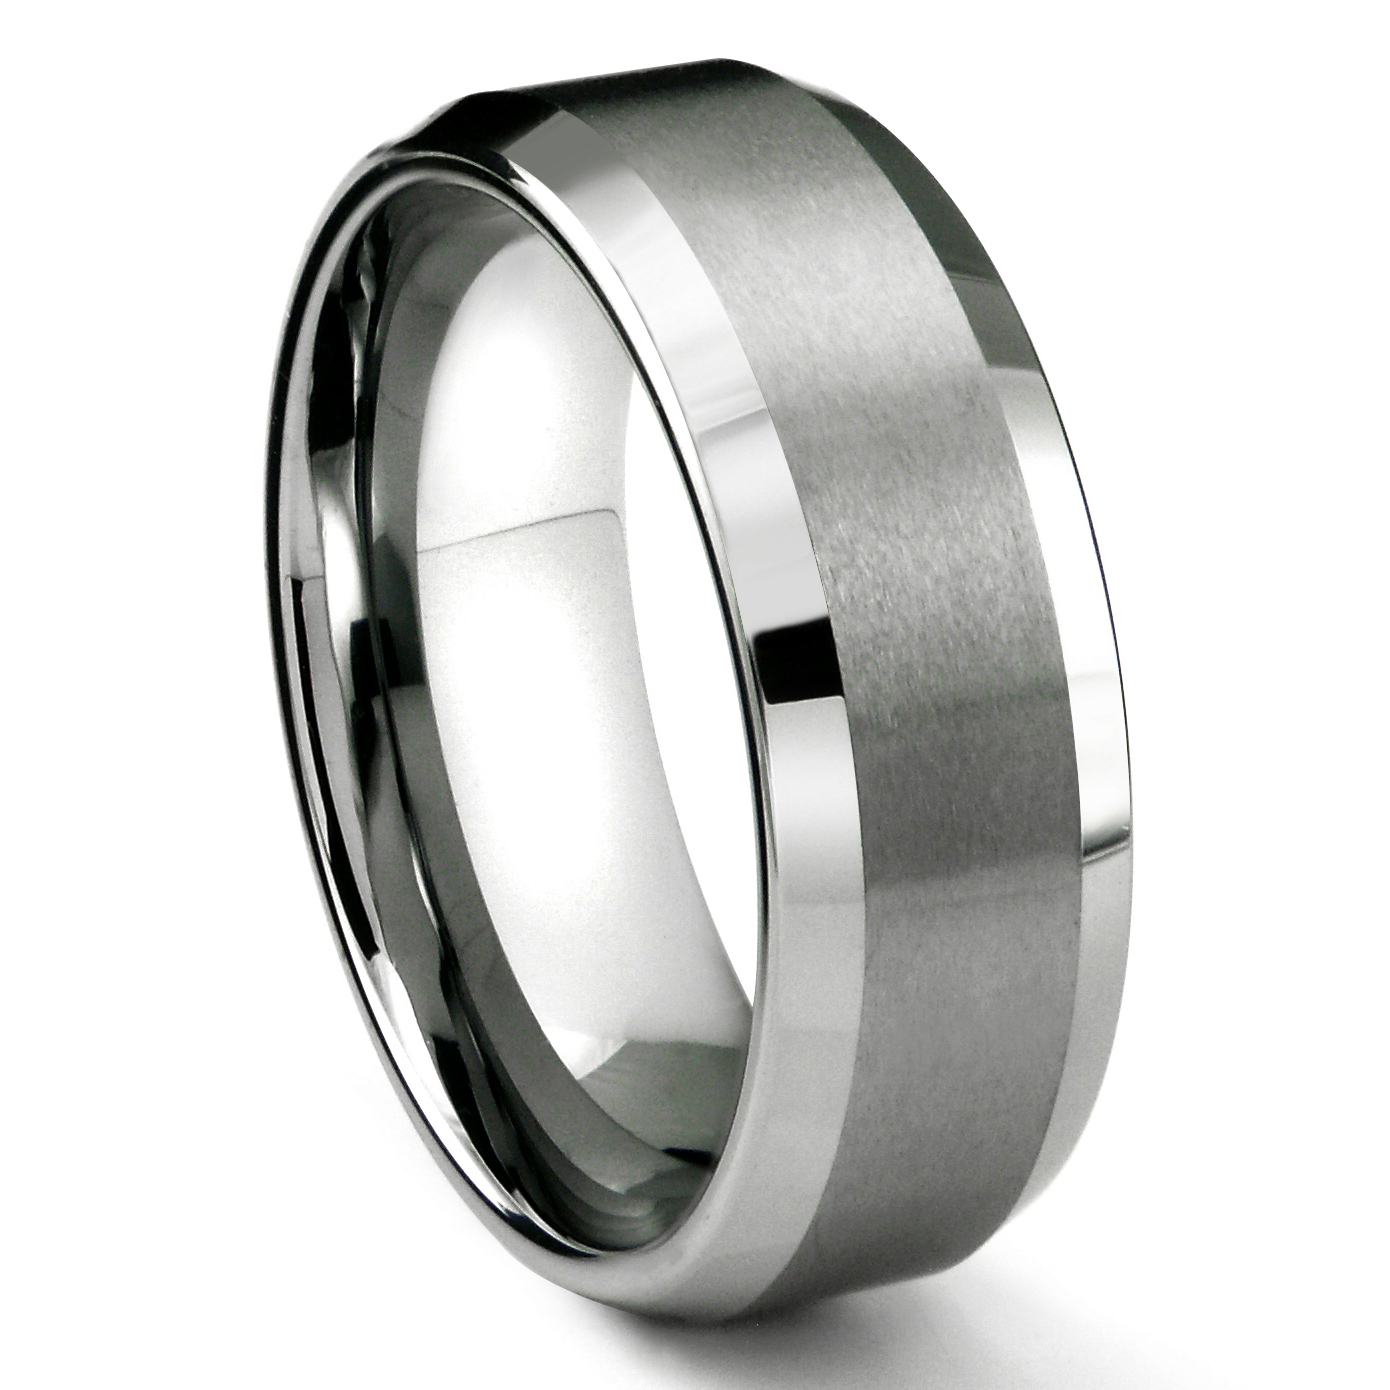 for fit p mm shop jewelry in mens platinum ring rings online comfort wedding